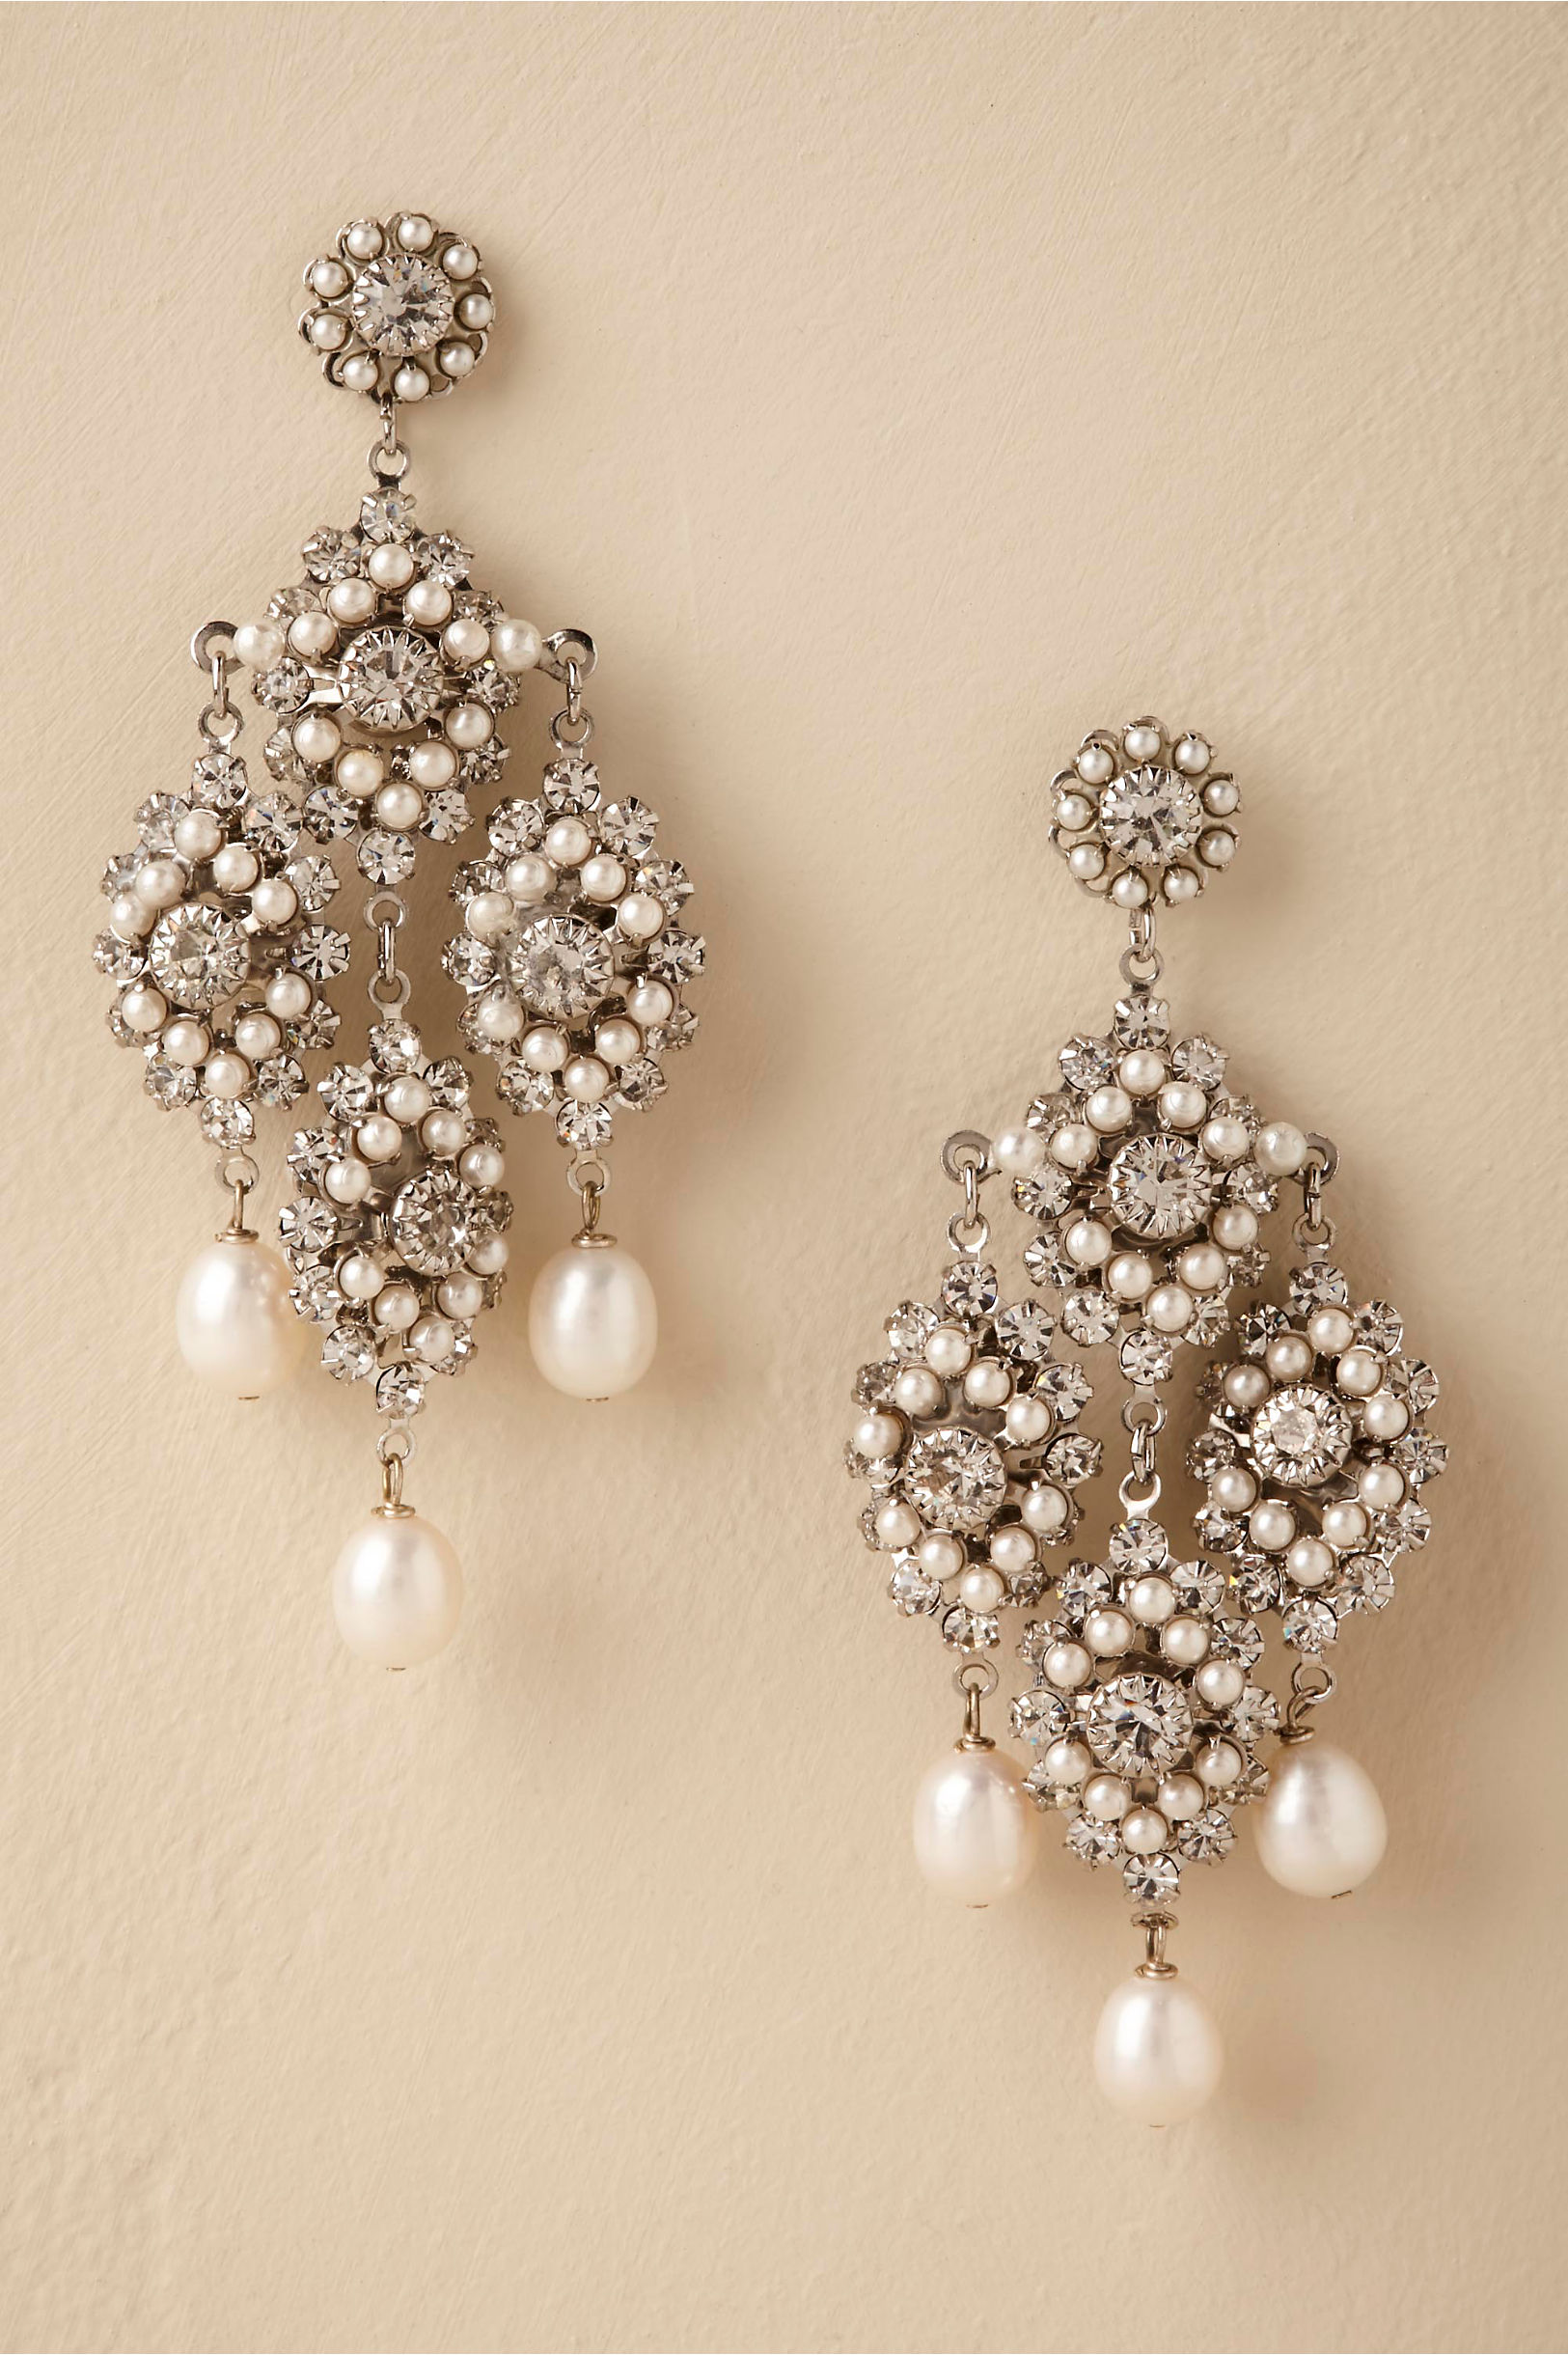 Lionetta Chandelier Earrings Silver in Bride | BHLDN